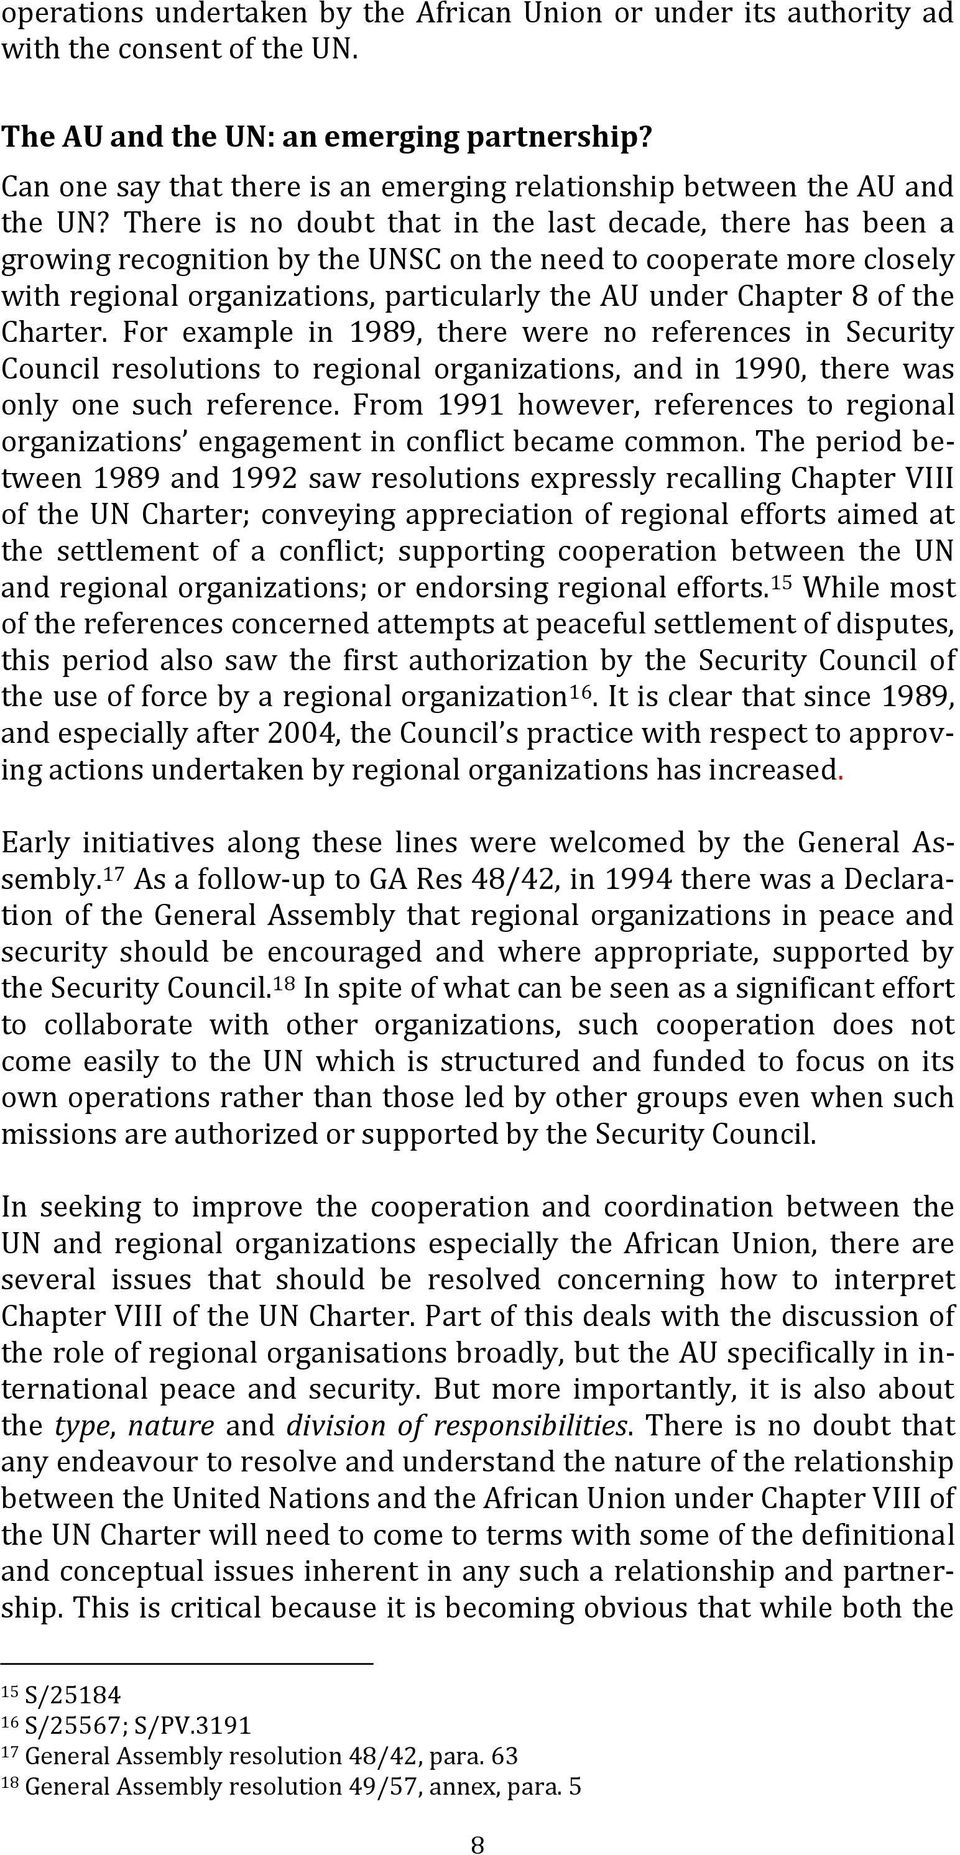 There is no doubt that in the last decade, there has been a growing recognition by the UNSC on the need to cooperate more closely with regional organizations, particularly the AU under Chapter 8 of